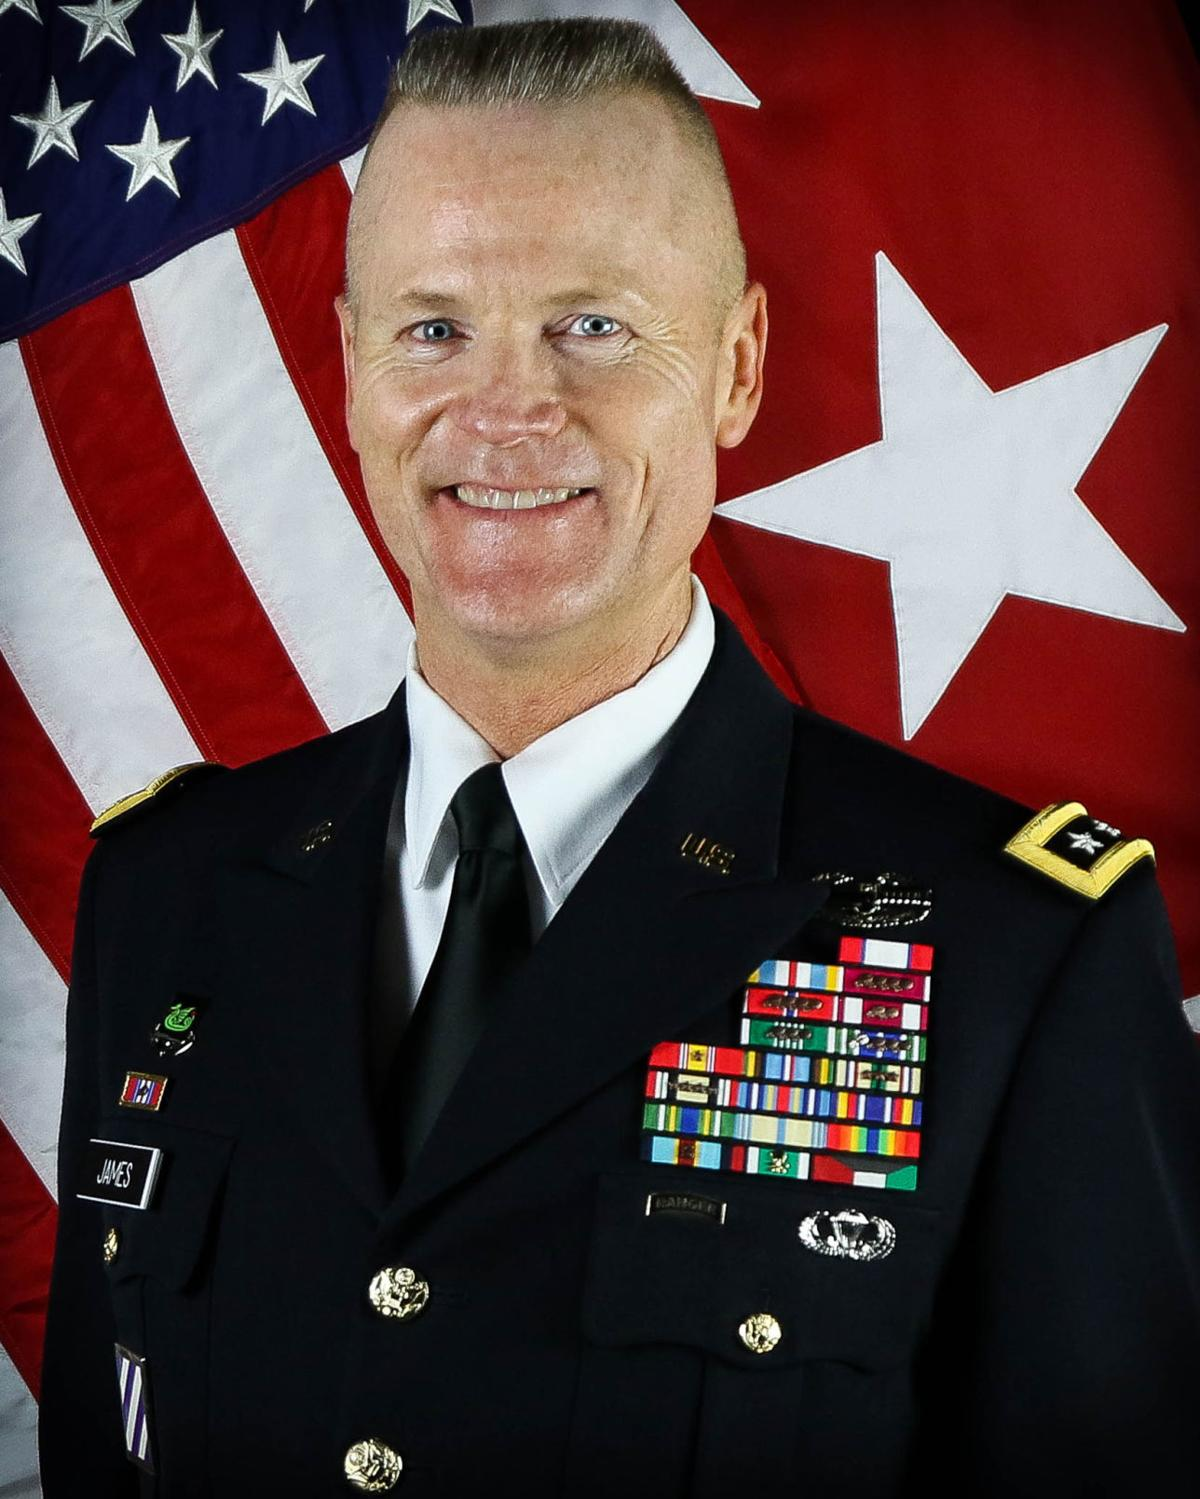 Lt. General Thomas S. James